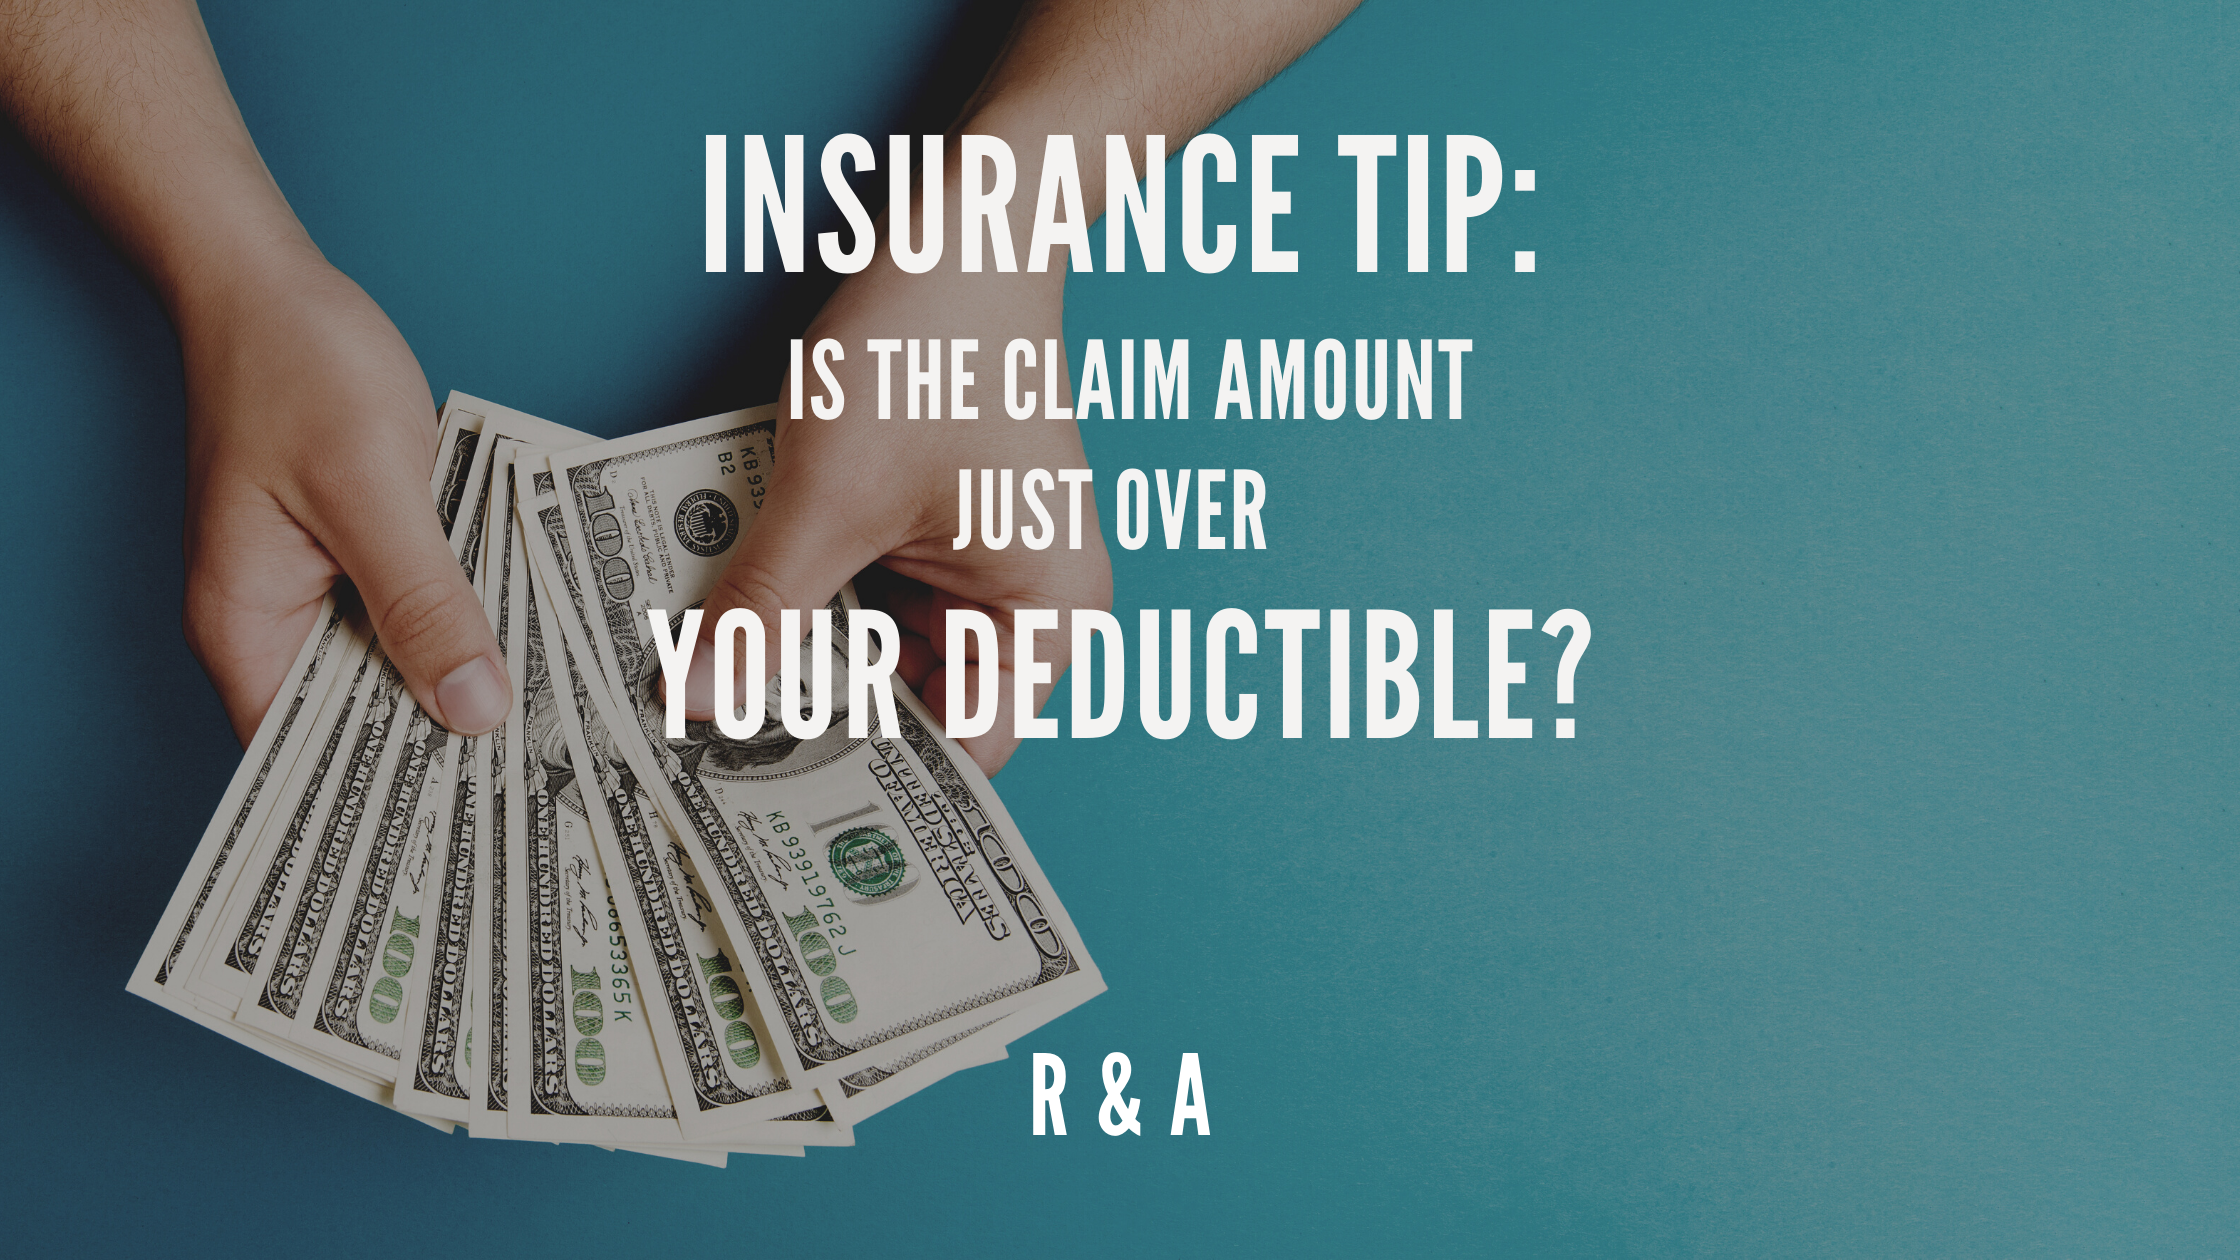 Insurance Tip: Is the Claim Amount Just Over Your Deductible?